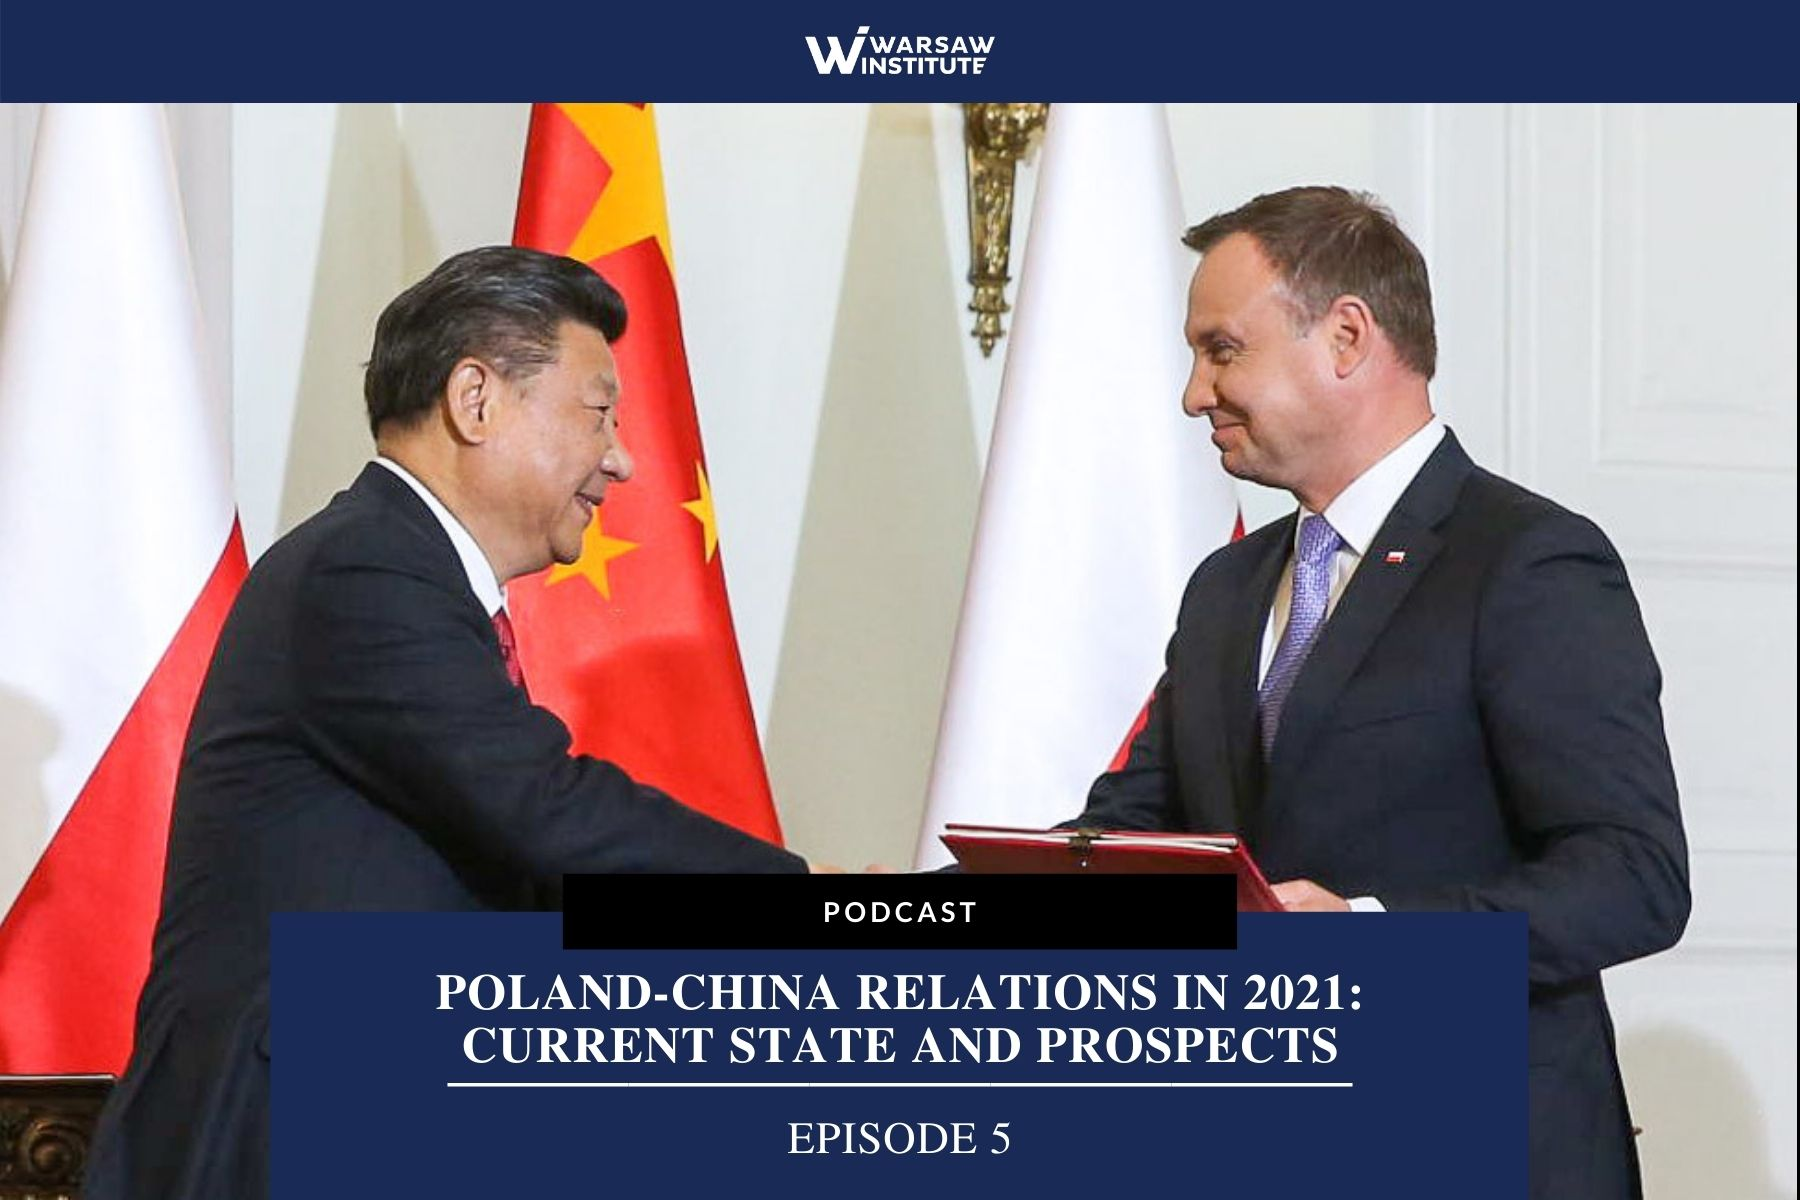 Poland-China Relations in 2021: Current State and Prospects – Podcast